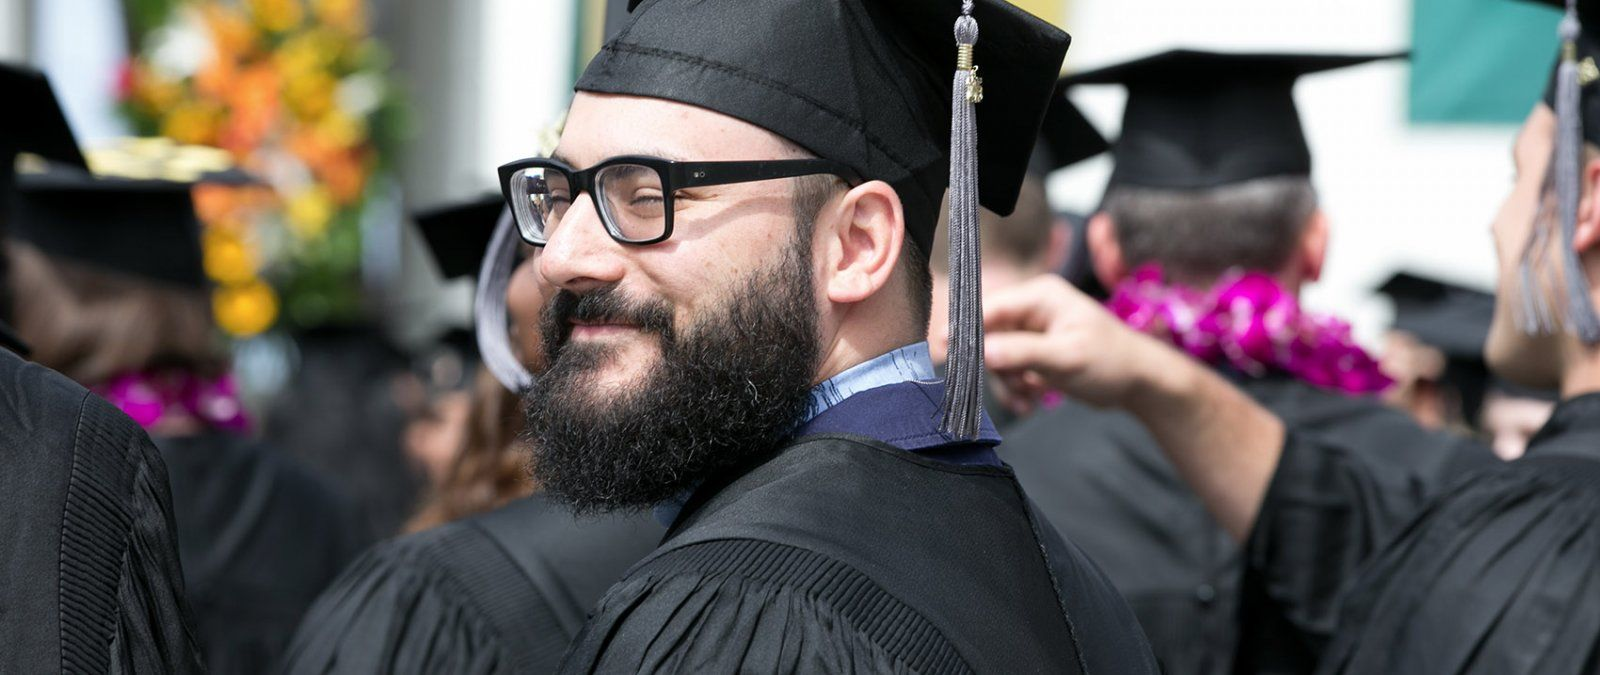 A PLNU graduate student smiles as he stands for graduation